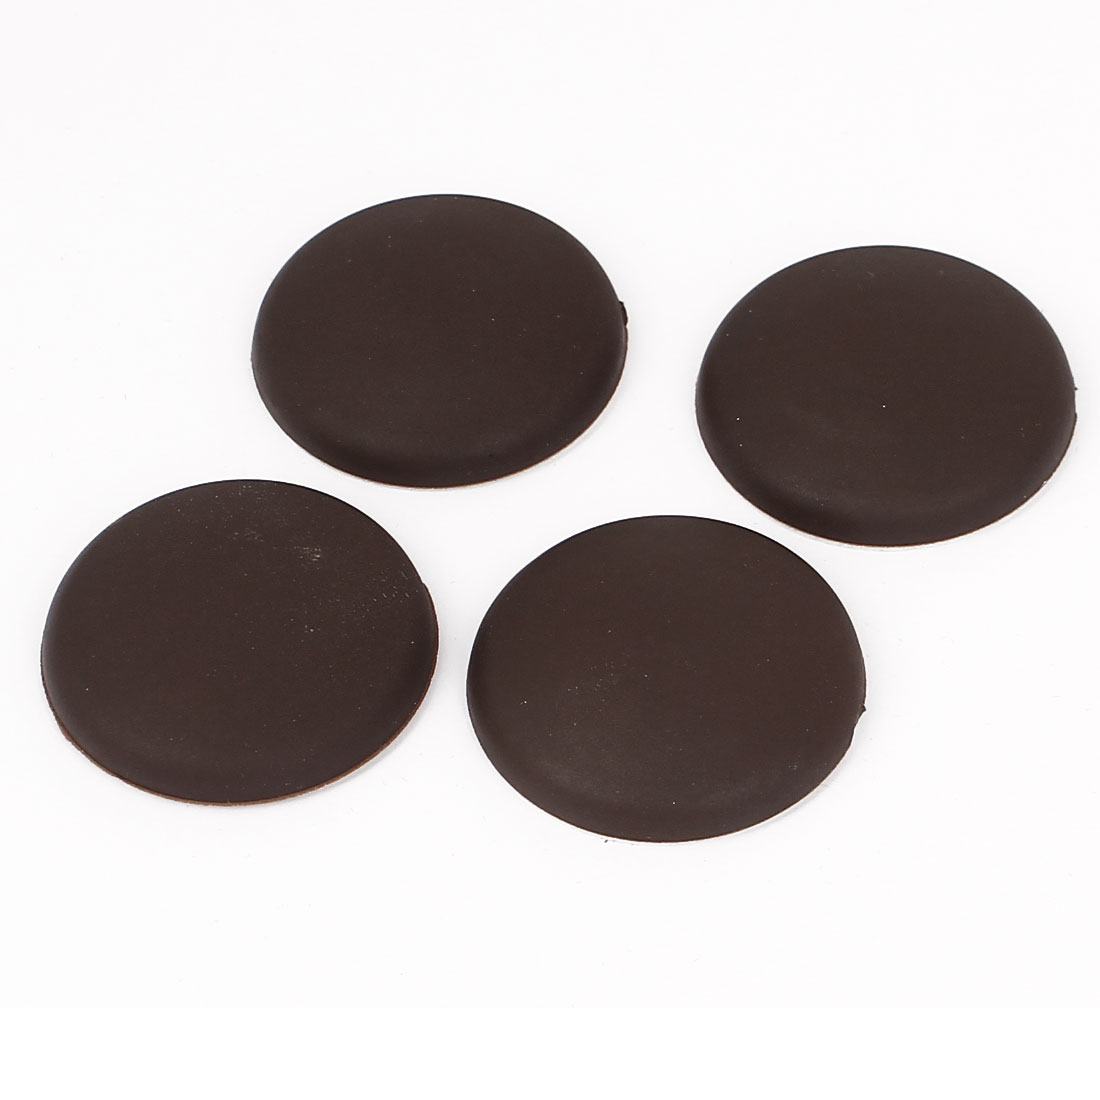 Brown Rubber Adhesive Wall Guard Door Handle Bumper Stopper Protector 4pcs